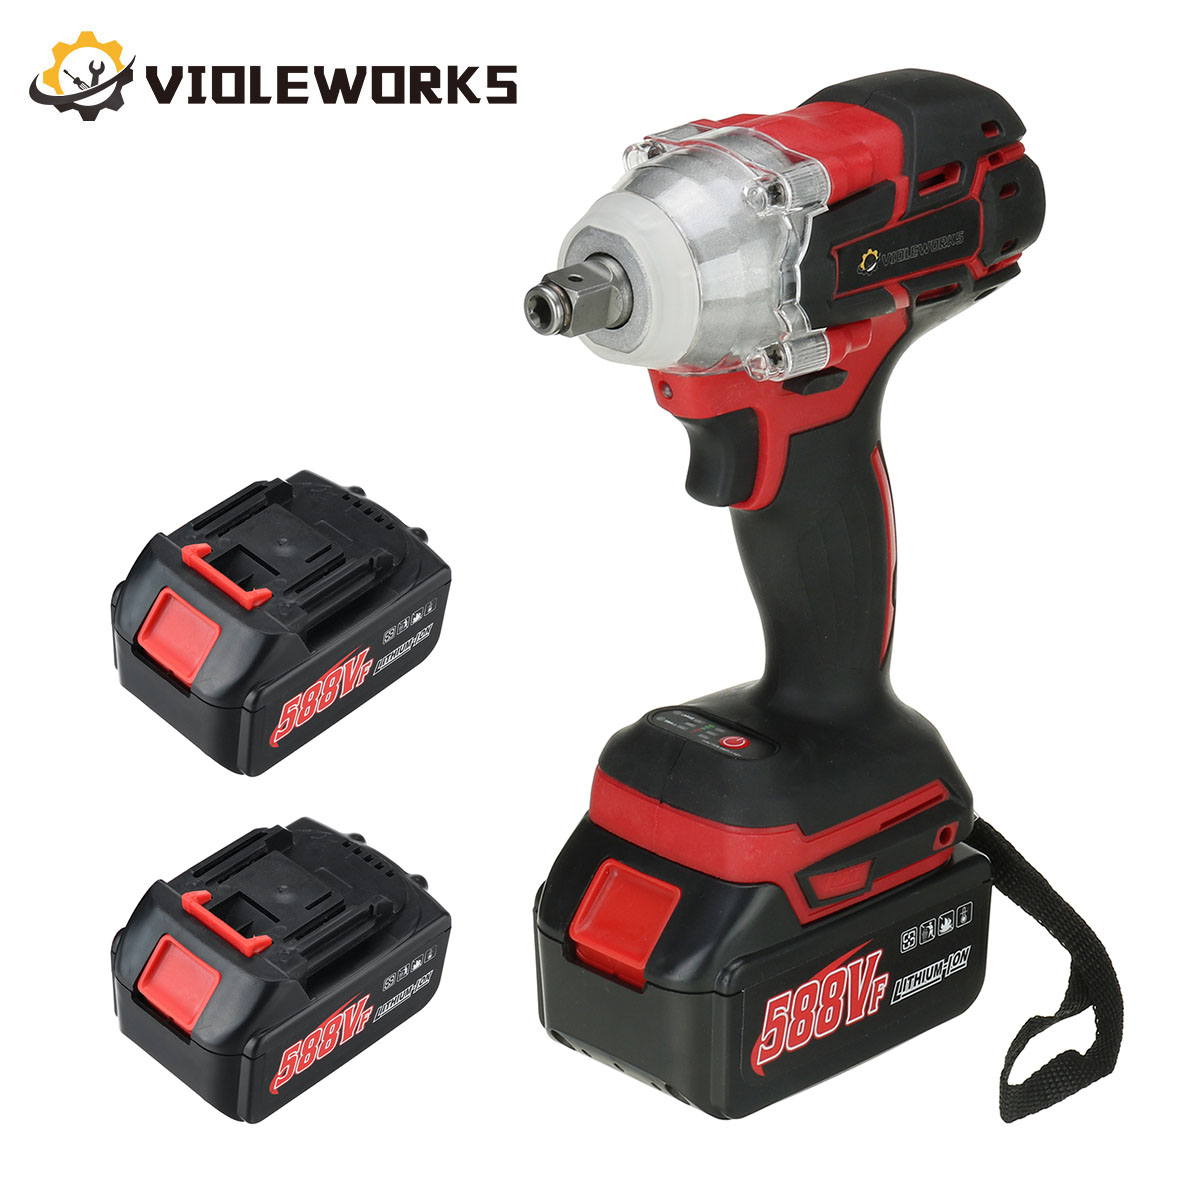 22800mAh 588VF Brushless Cordless Electric Impact Wrench 1/2 inch Wrench Power Tools Compatible For Makita Rechargeable Battery